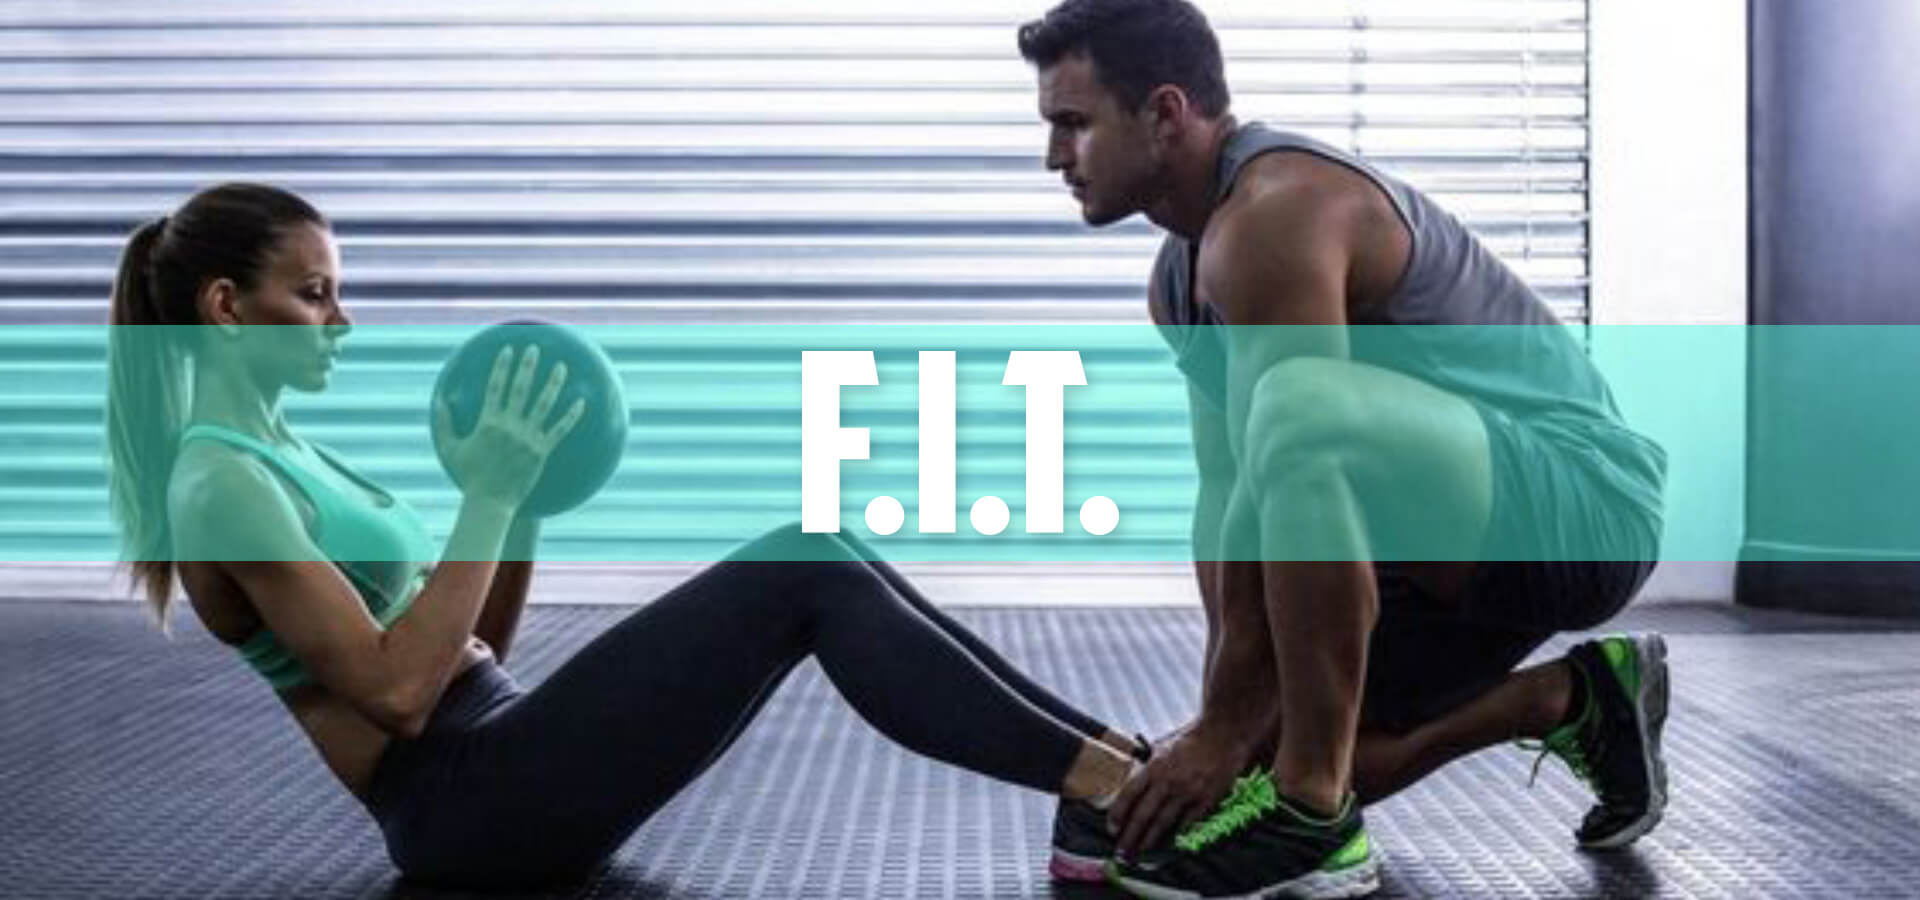 F.I.T. - FABULOUS INTENSIVE TRAINING